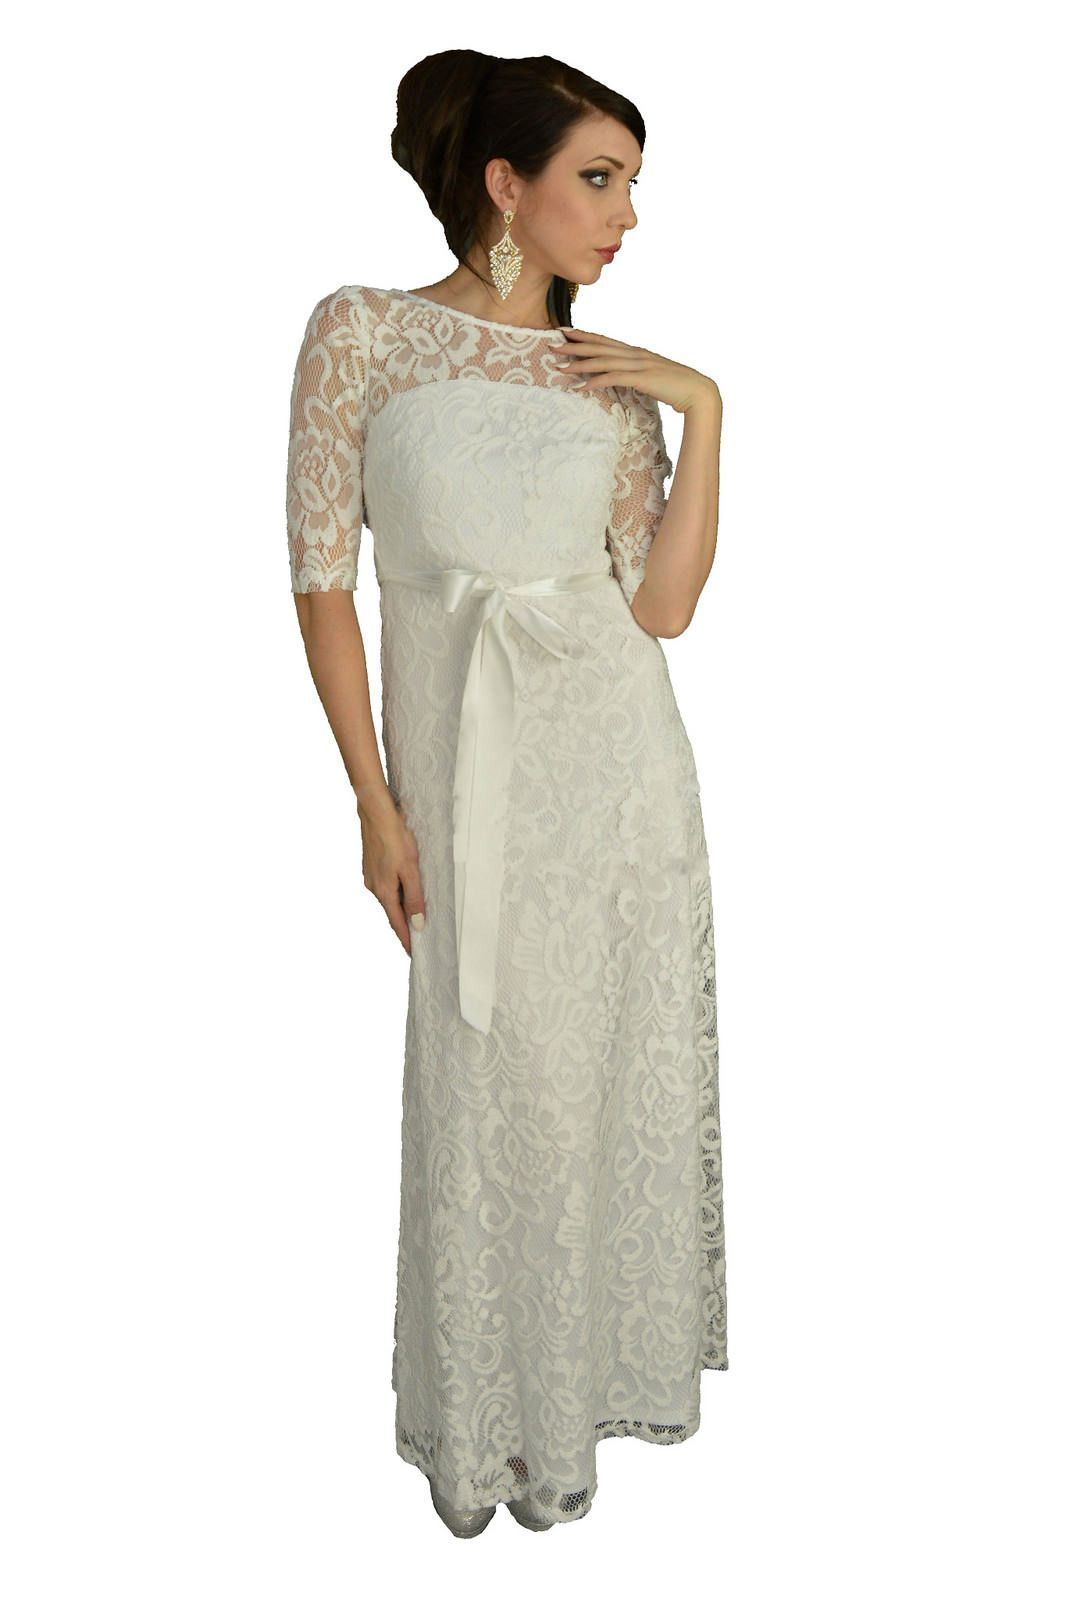 Mothers dress for wedding plus size  Beautiful mother of the bride groom full length formal feature lace